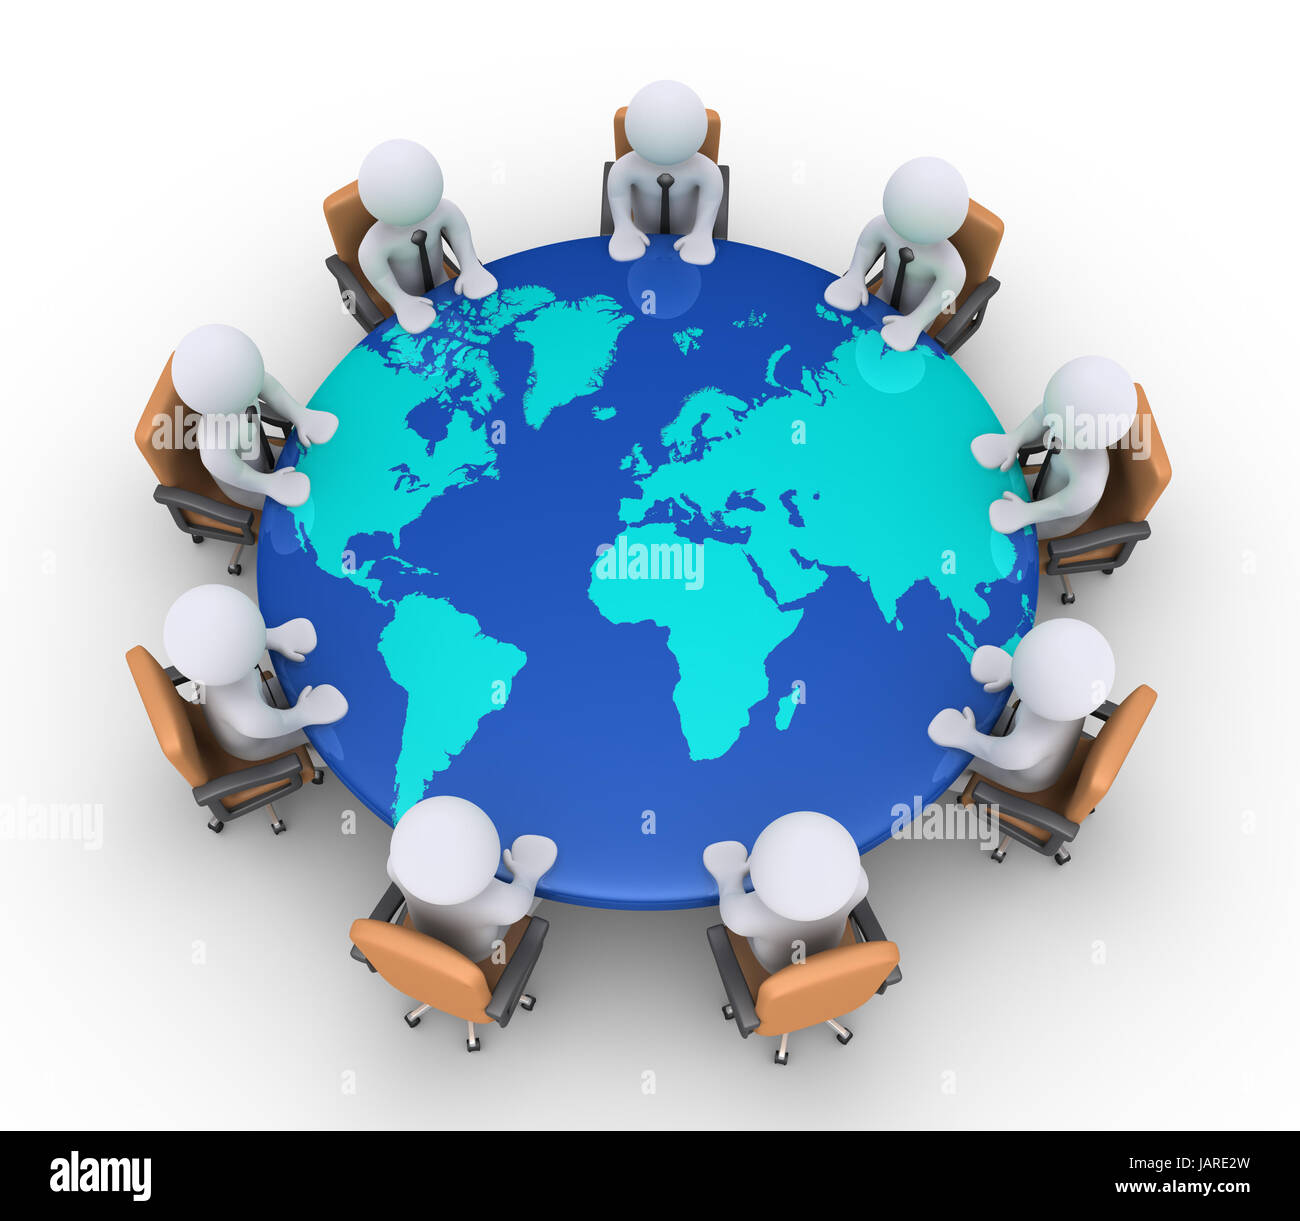 3d businessmen sitting on armchairs and a round table with the 3d businessmen sitting on armchairs and a round table with the world map gumiabroncs Images